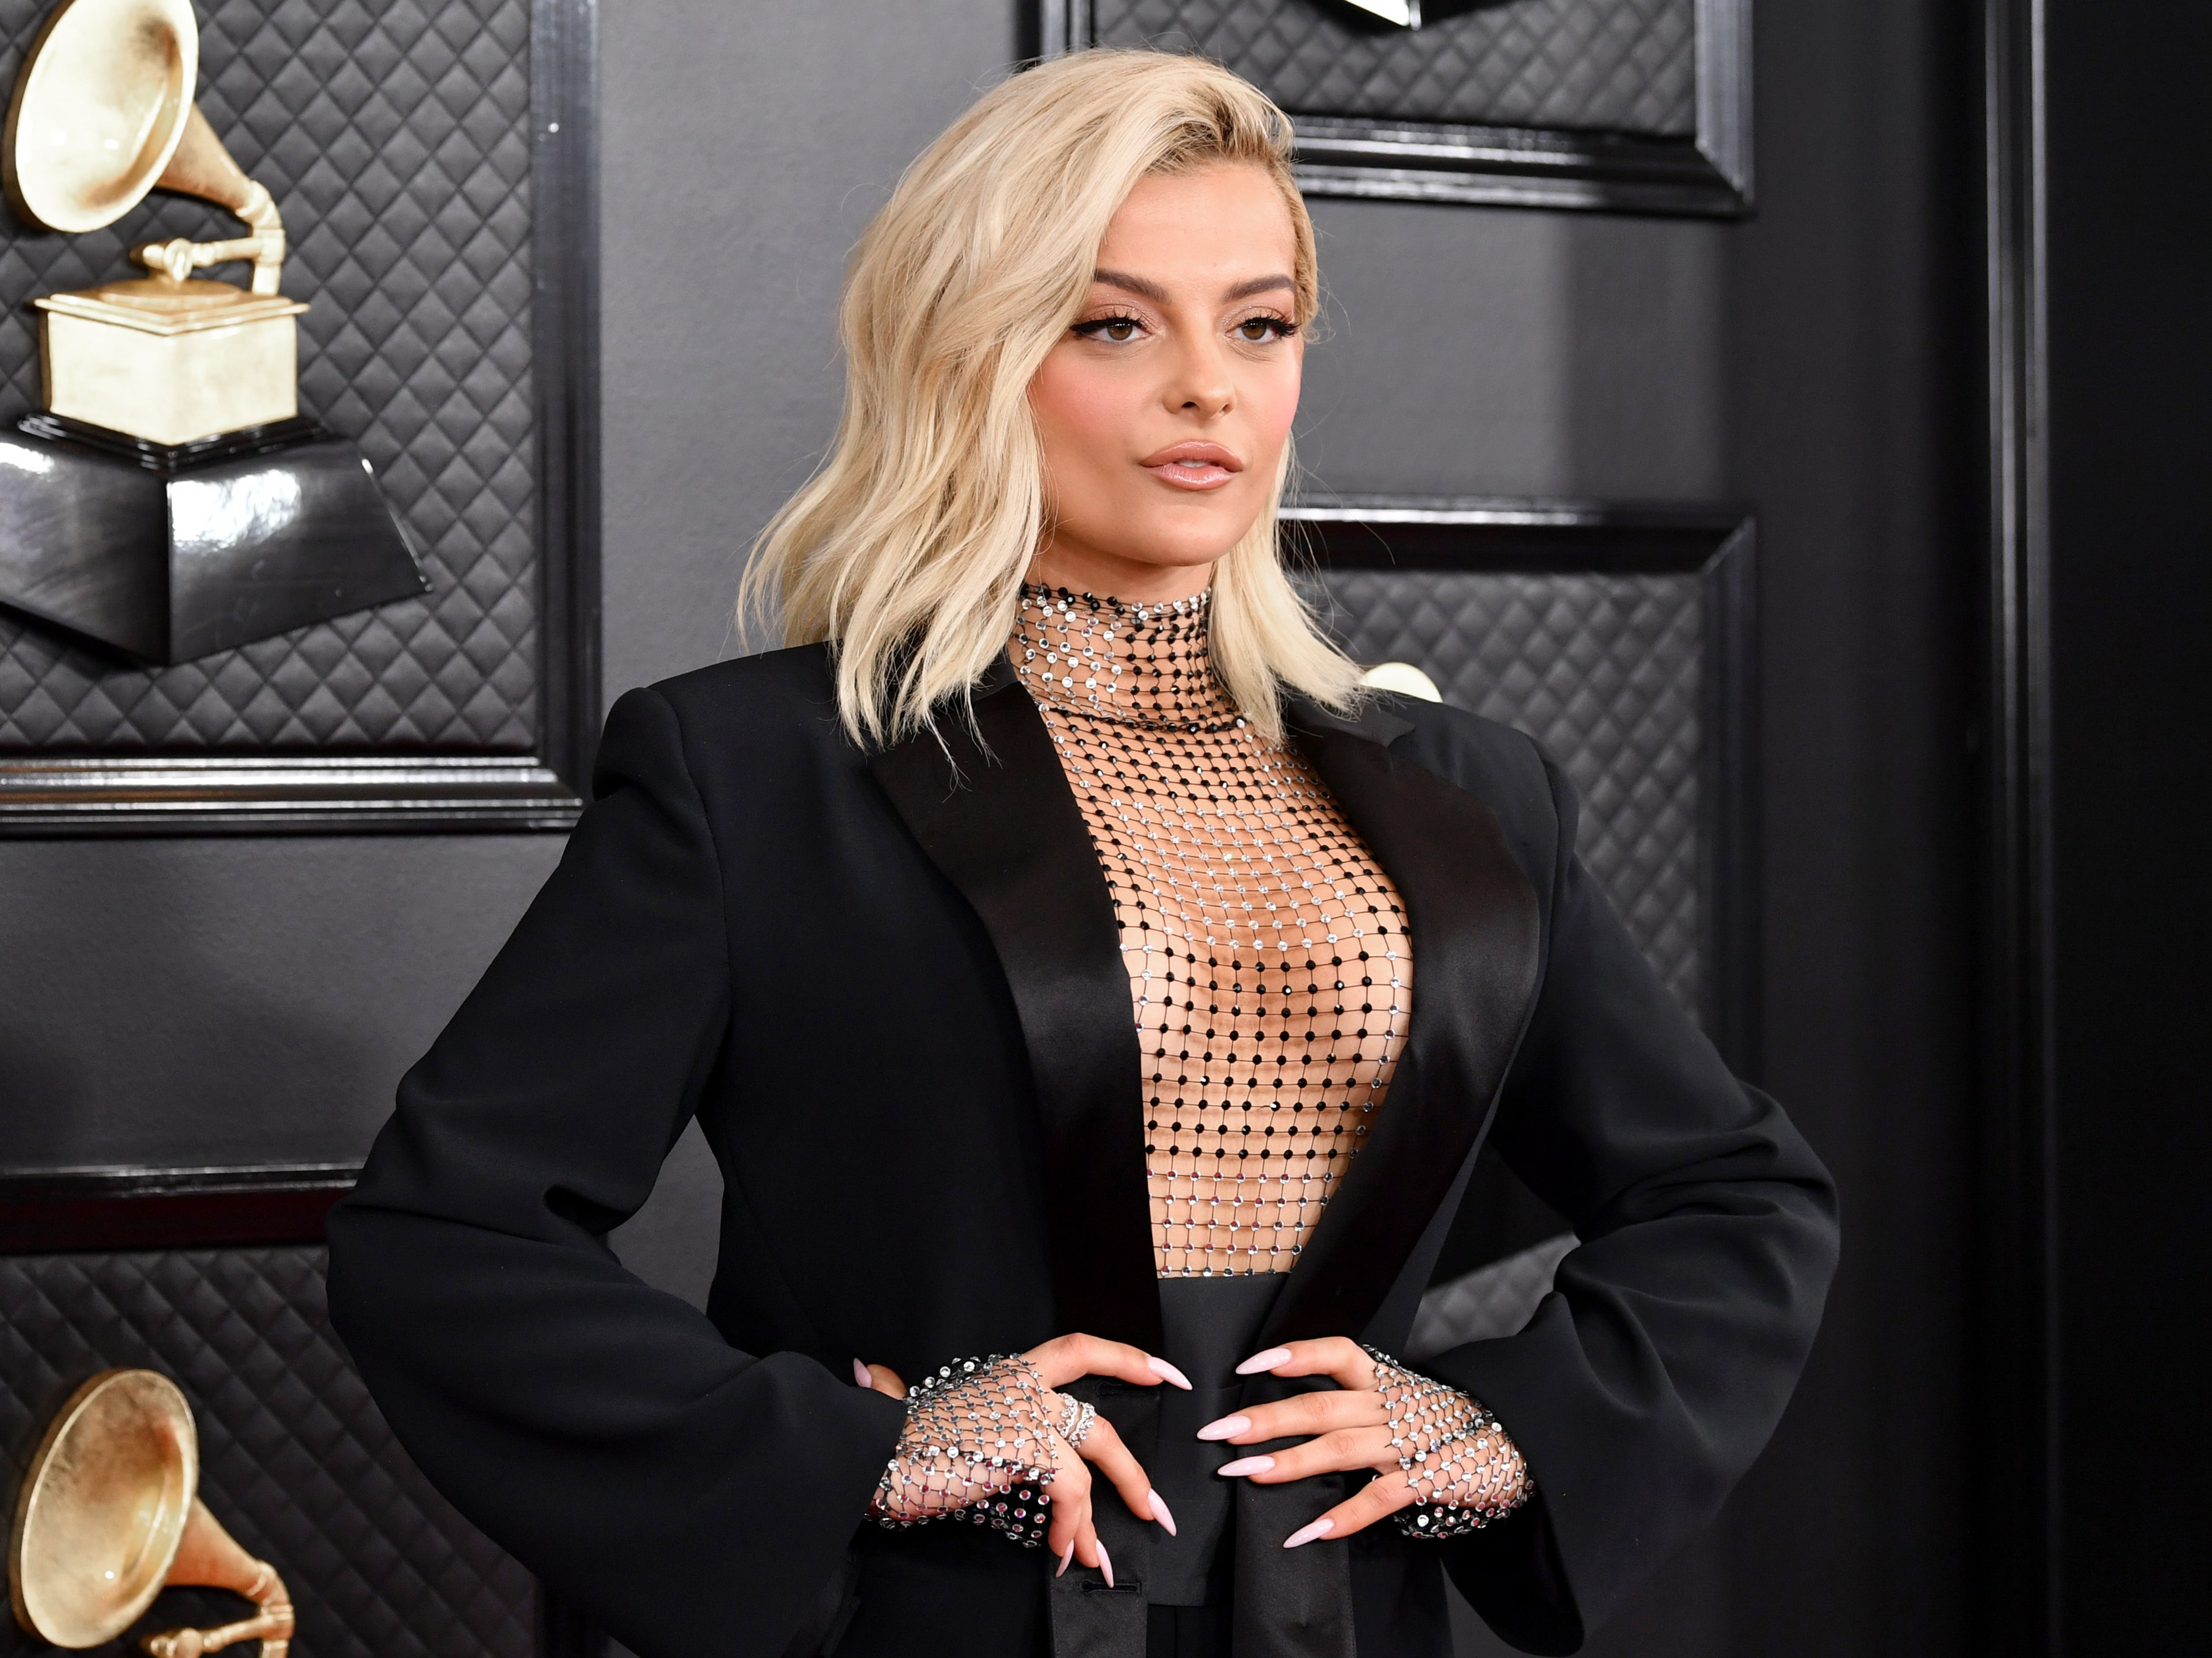 Bebe Rexha attends the 62nd Annual Grammy Awards at Staples Center on January 26, 2020 in Los Angeles,